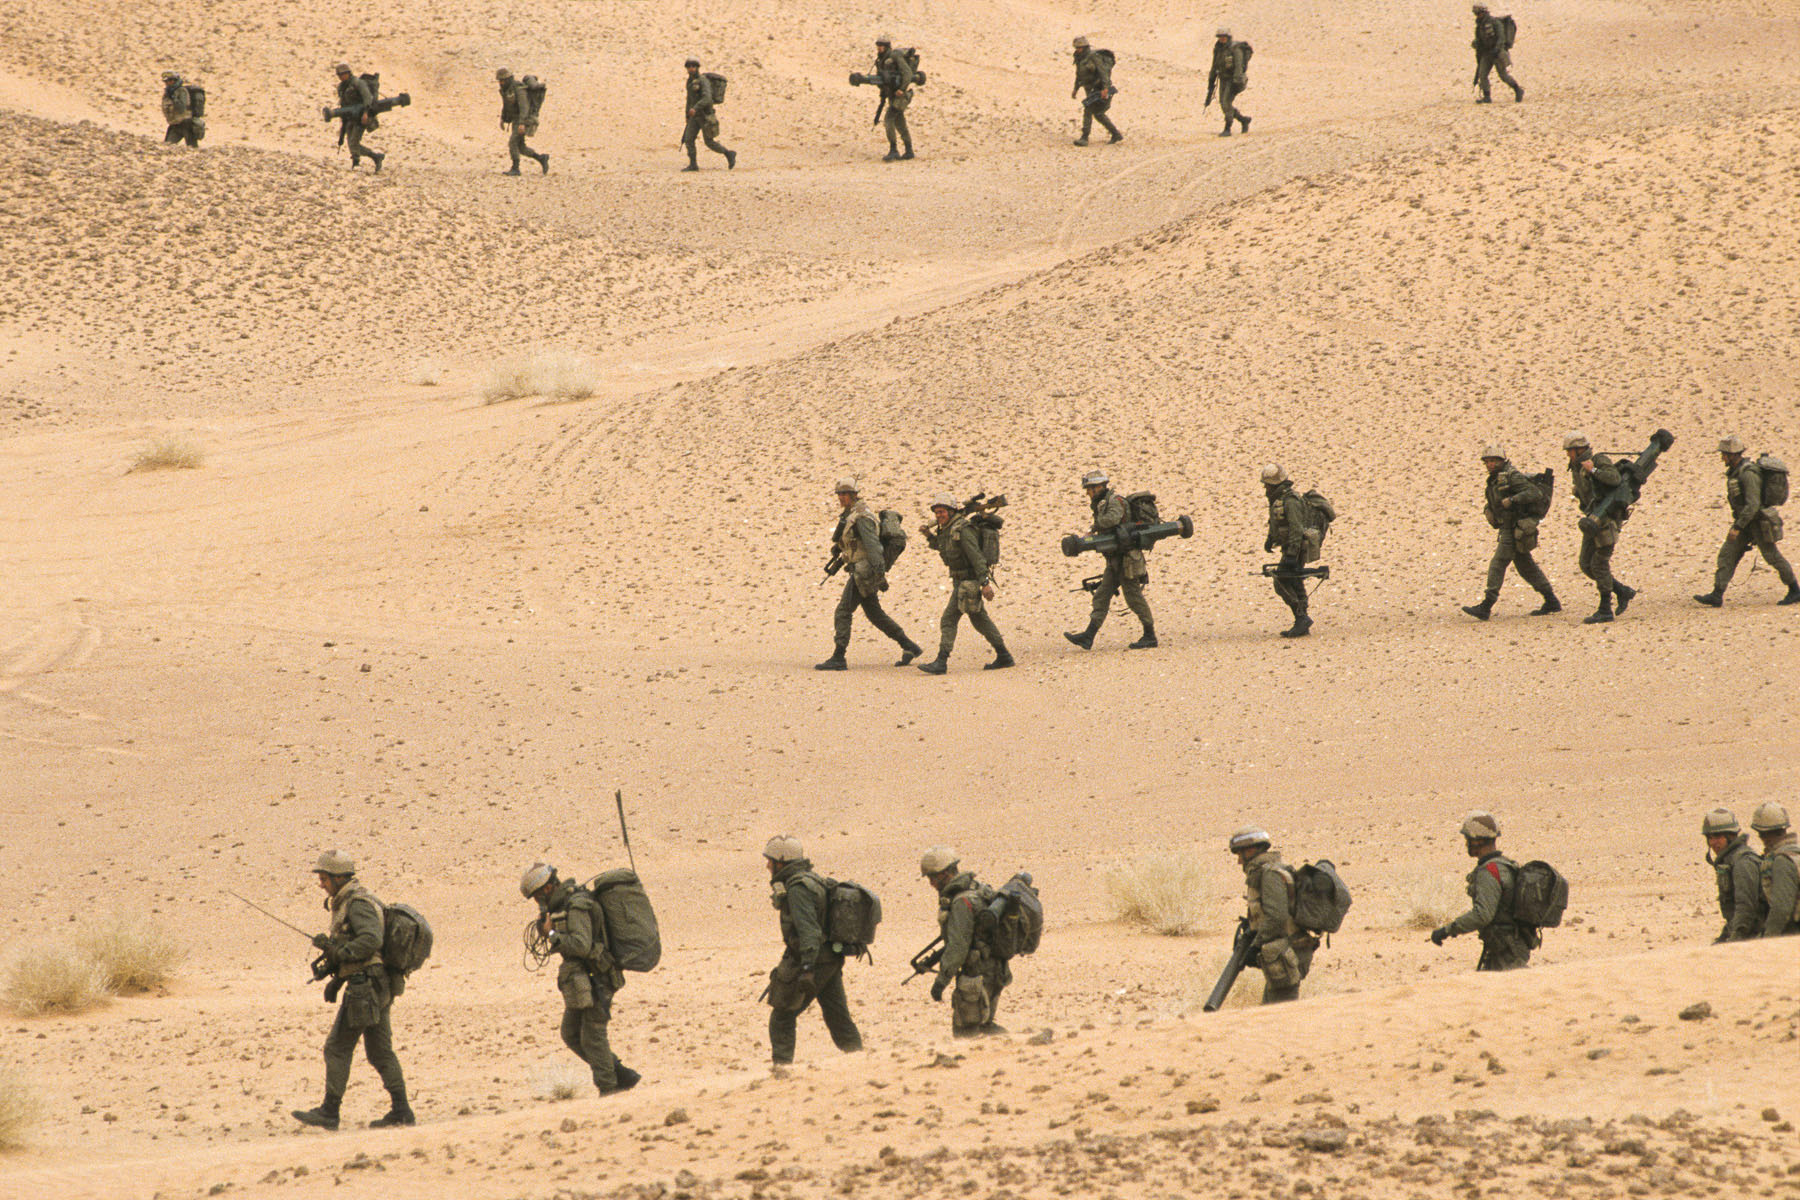 French Foreign Legion troops in January 1991